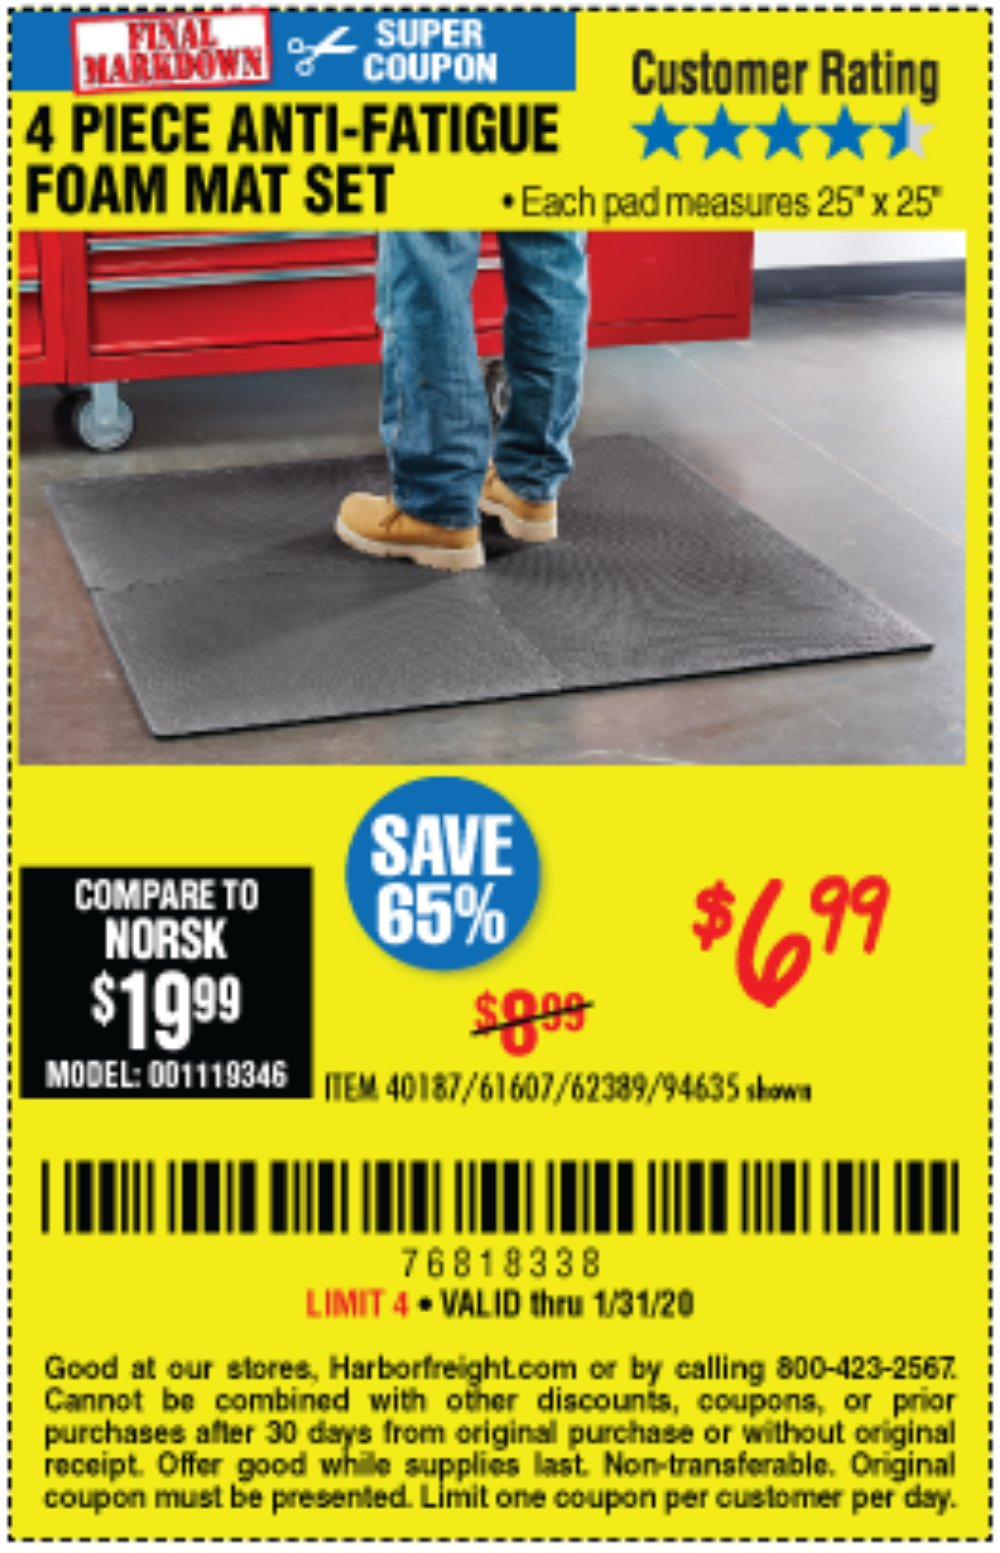 Harbor Freight Coupon, HF Coupons - 4 Piece Anti-fatigue Foam Mat Set